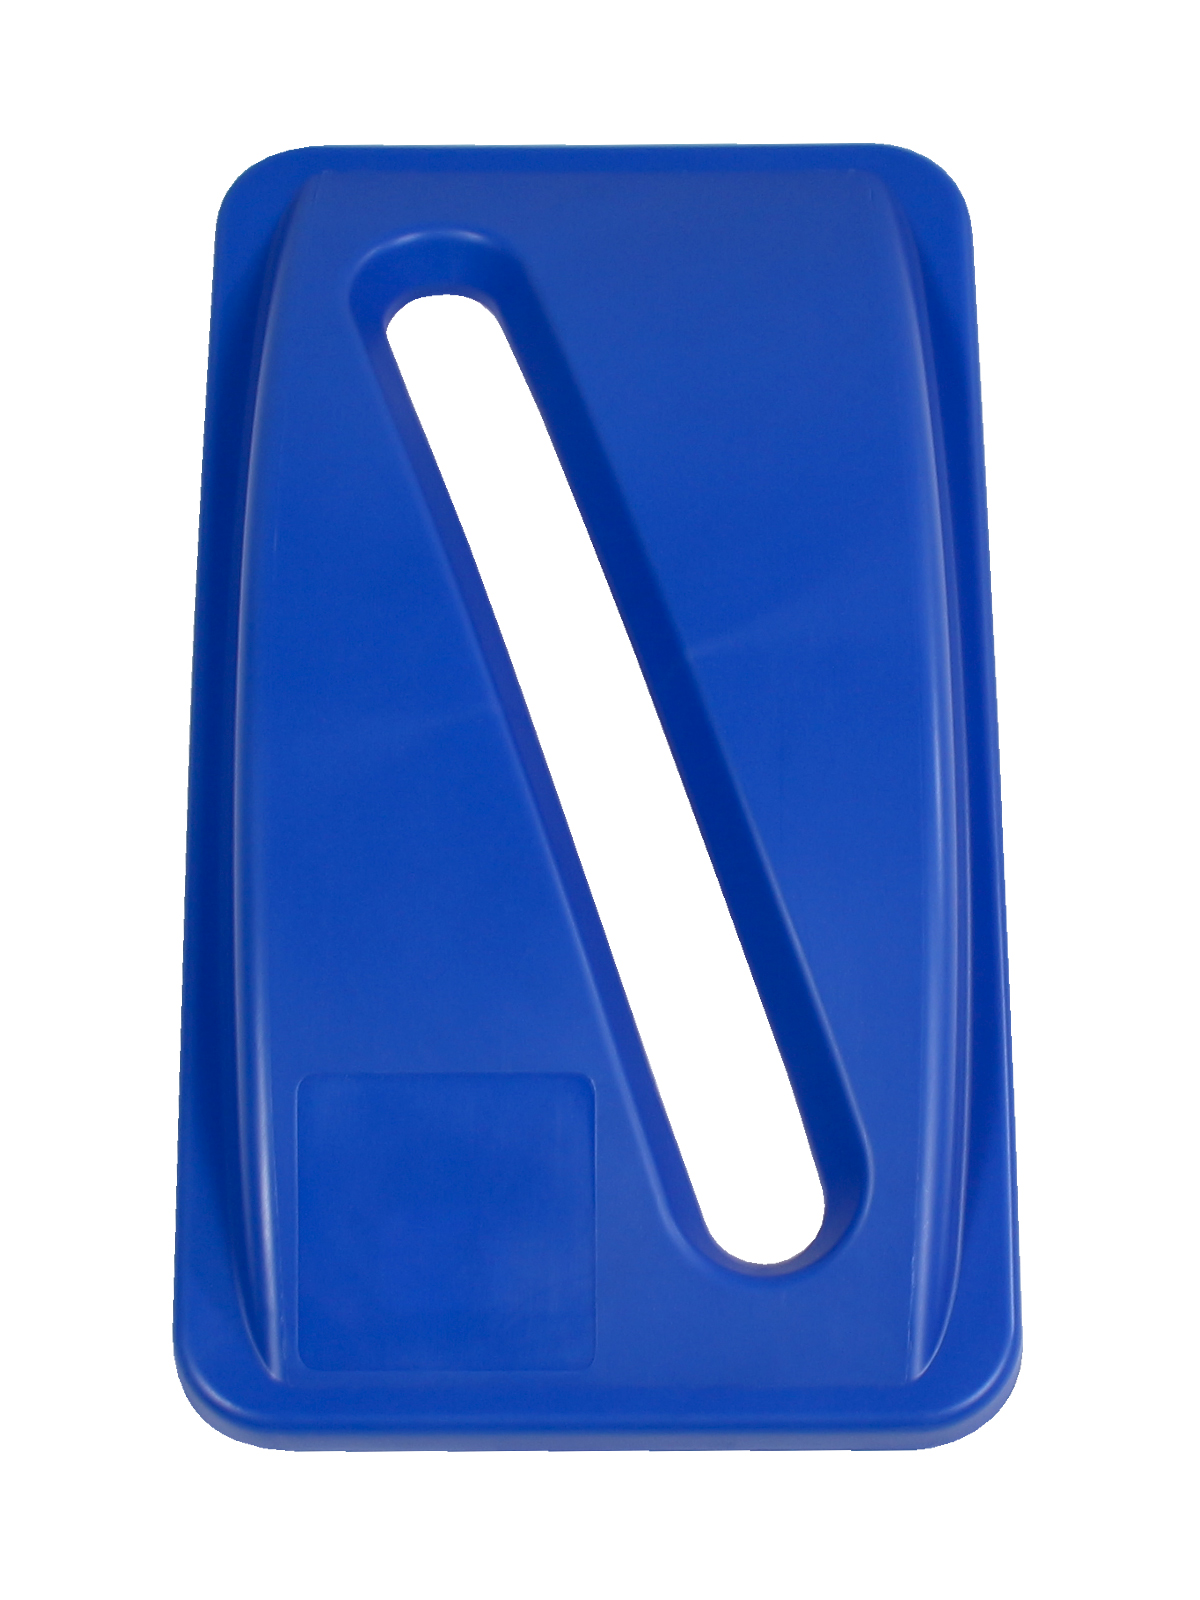 WASTE WATCHER - Single - Lid - Slot - Royal Blue